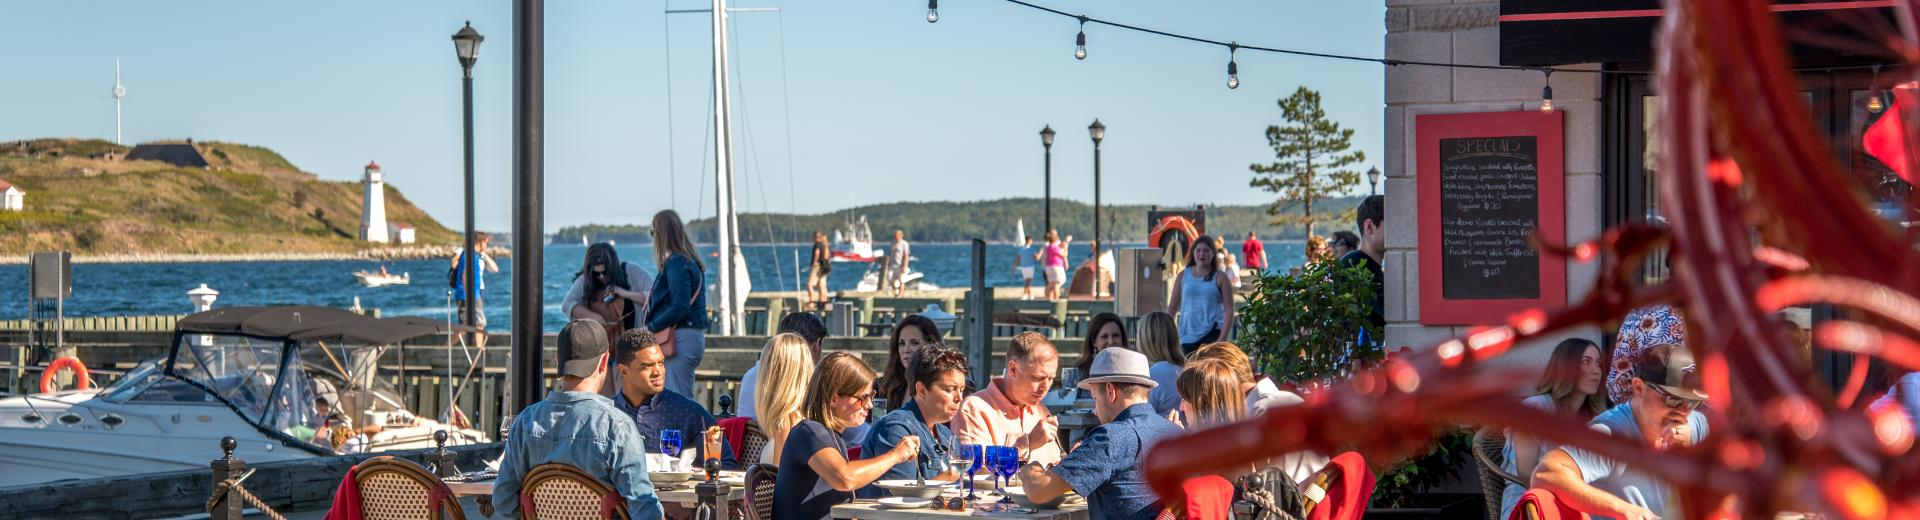 Waterfront restaurants in downtown Halifax.